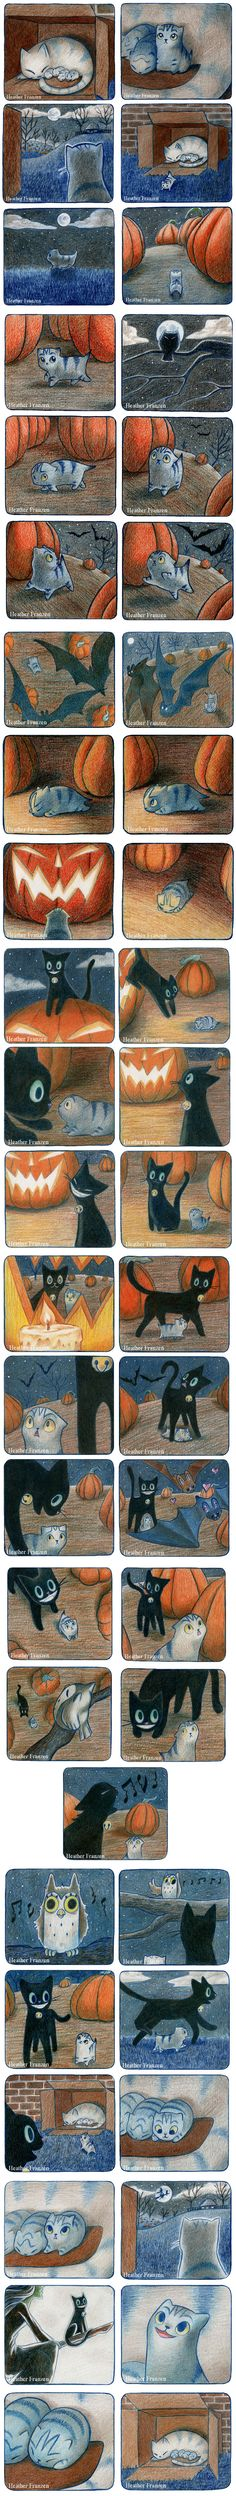 A Cat Story So cute!!